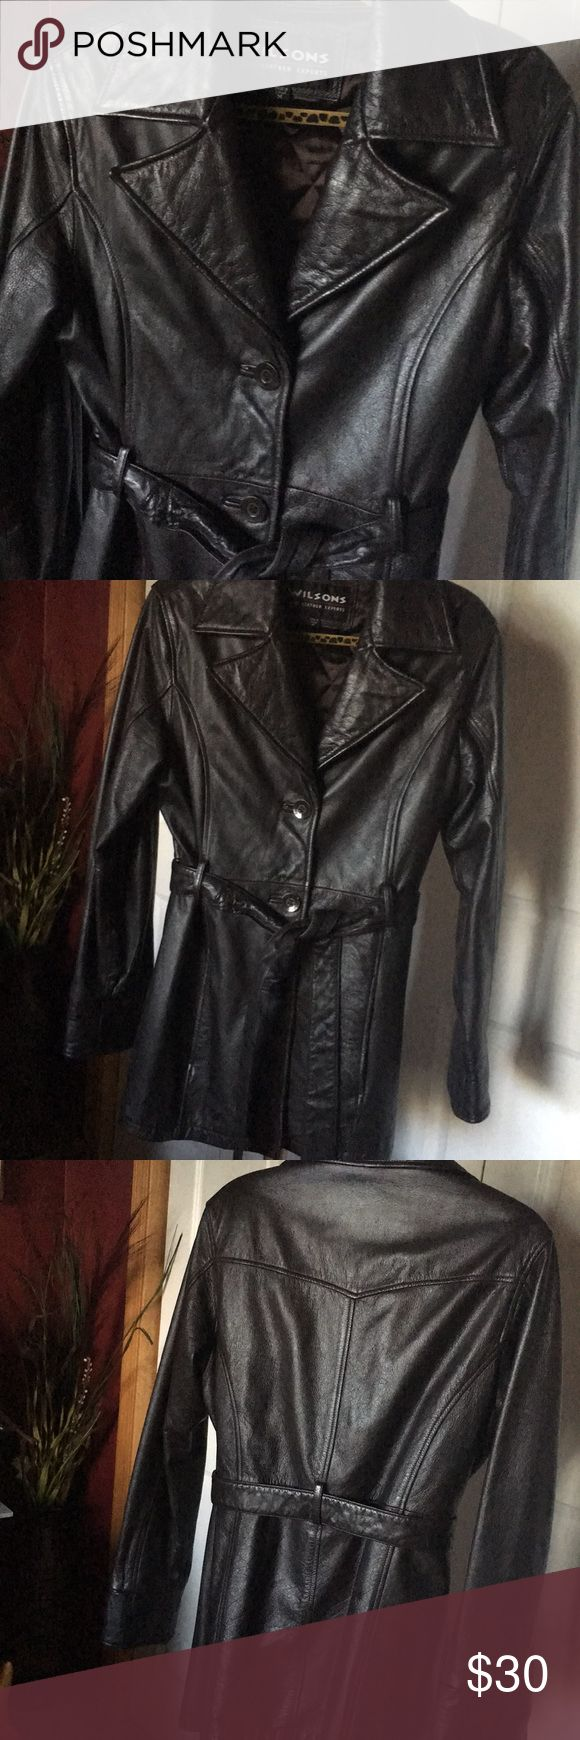 Wilsons Leather Jacket* Extremely nice brown leather